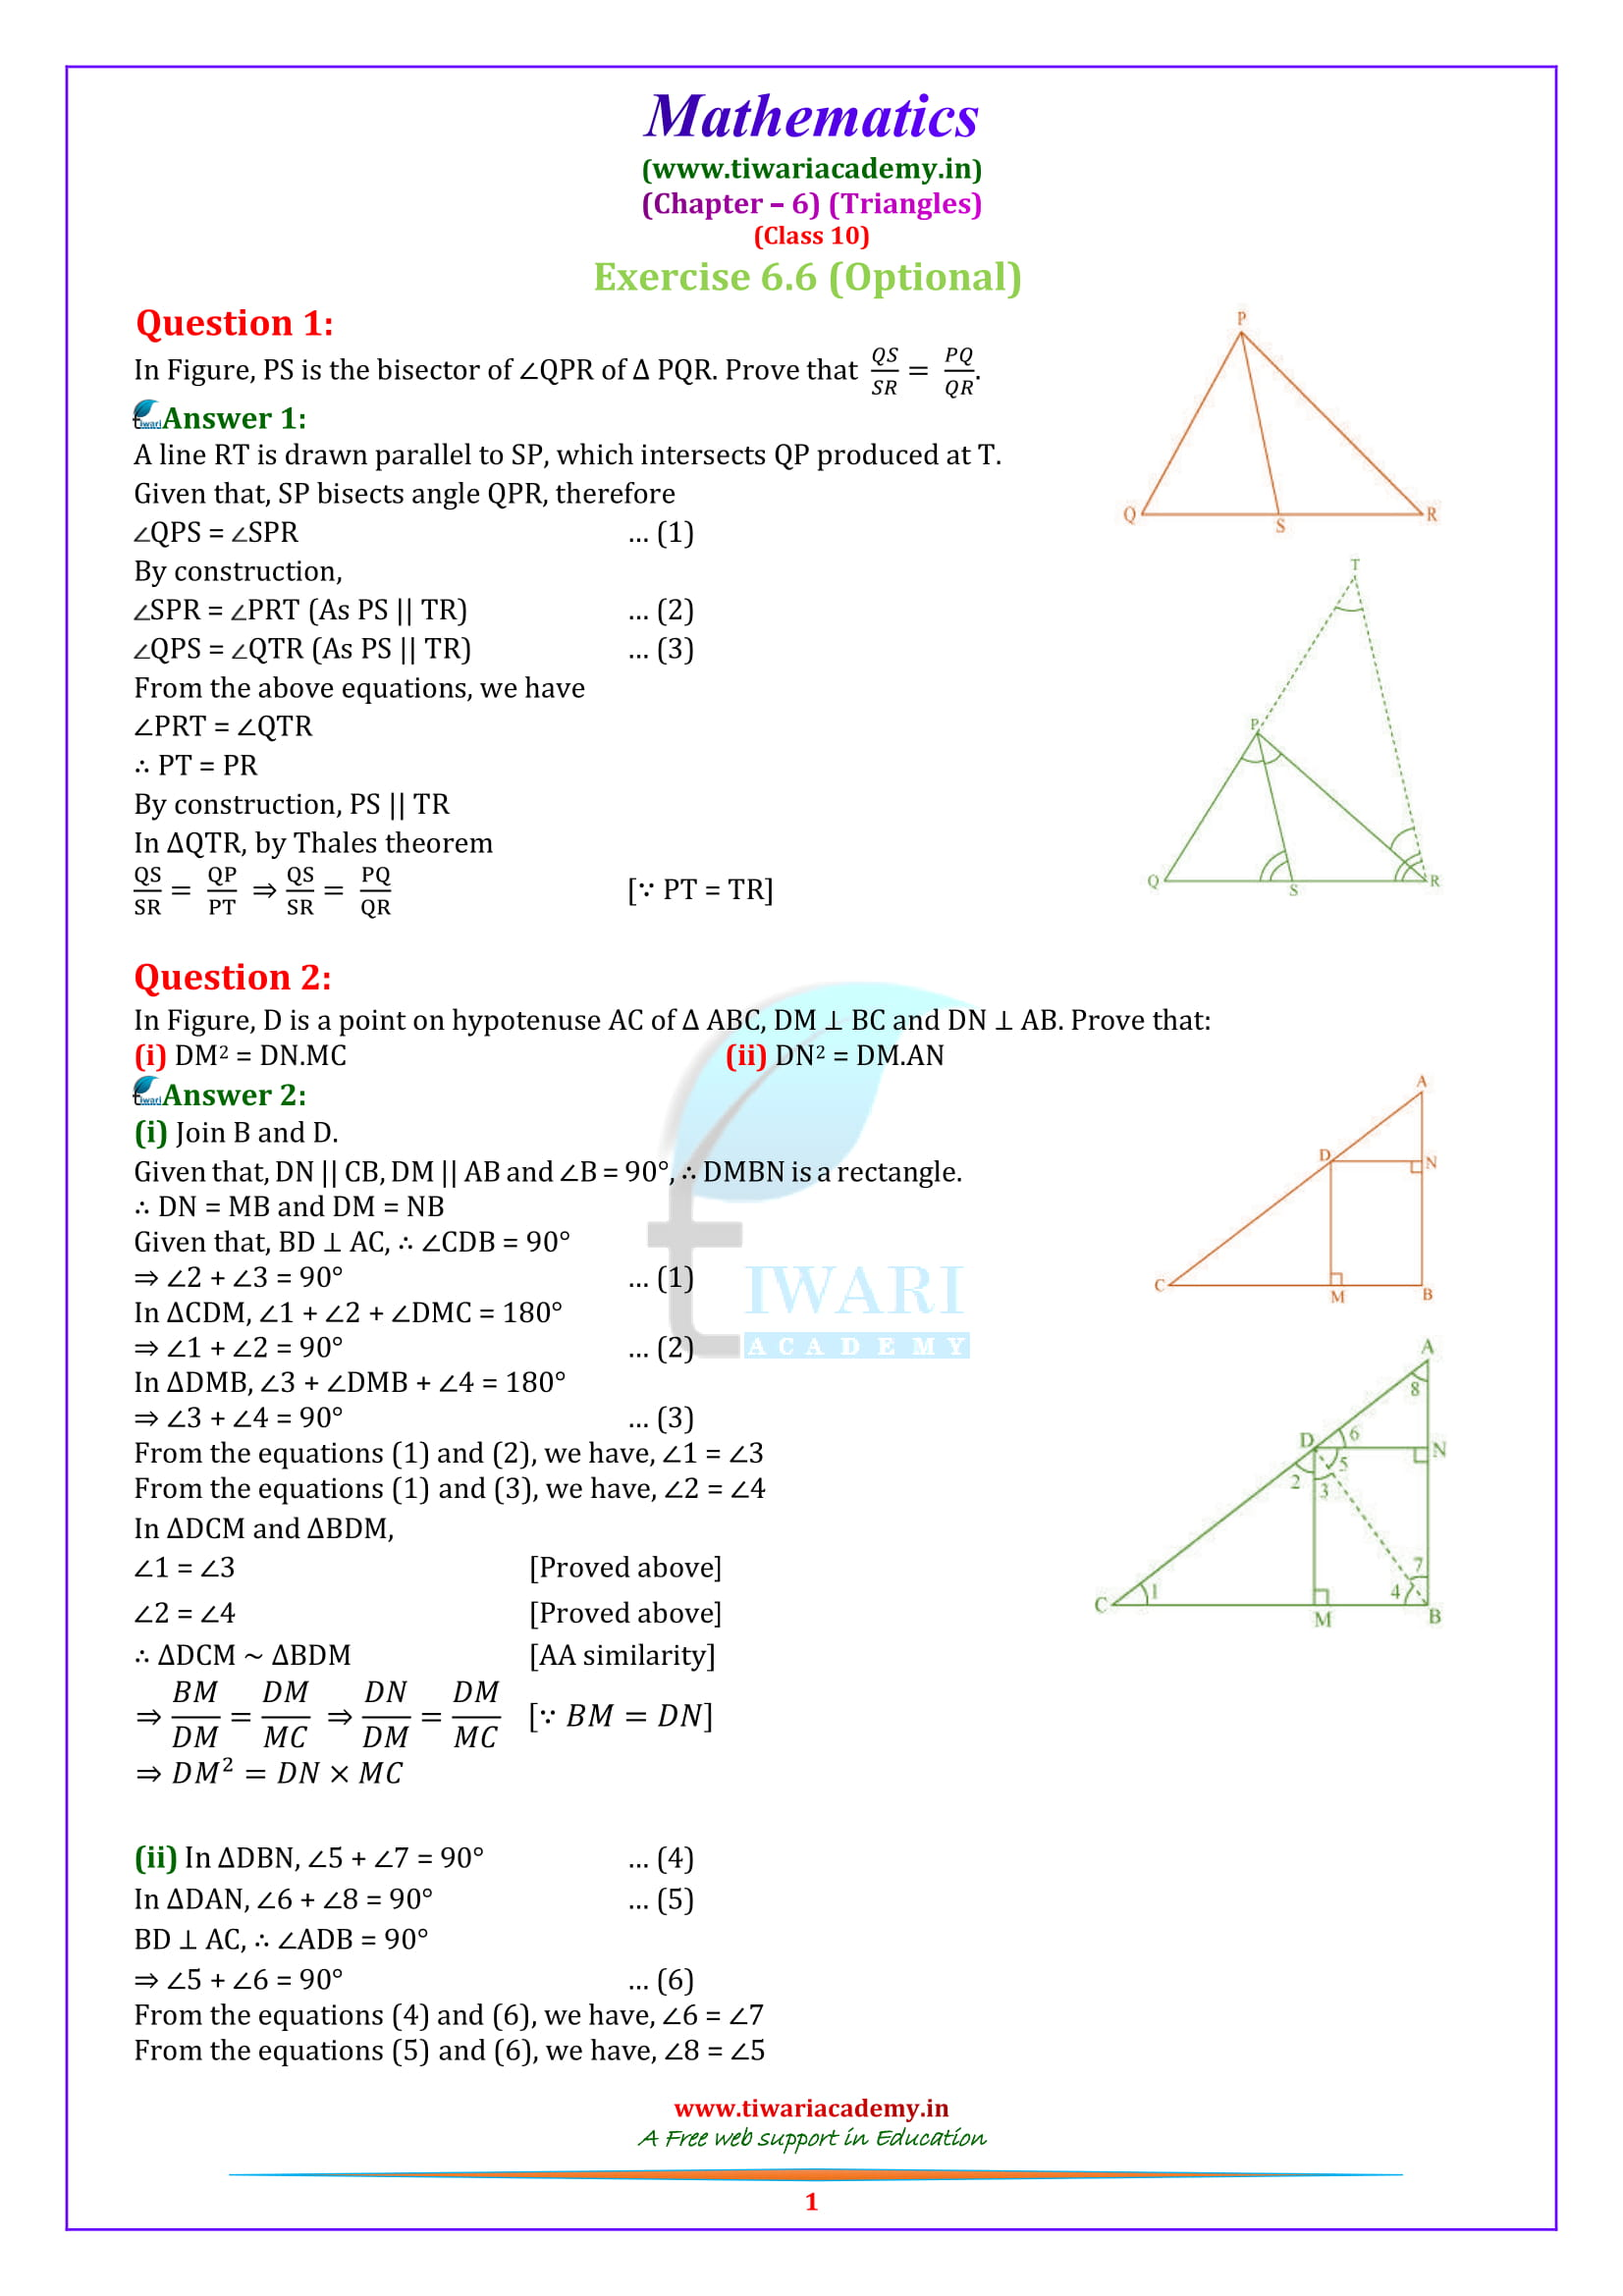 10 Maths optional Exercise 6.6 in English medium solutions